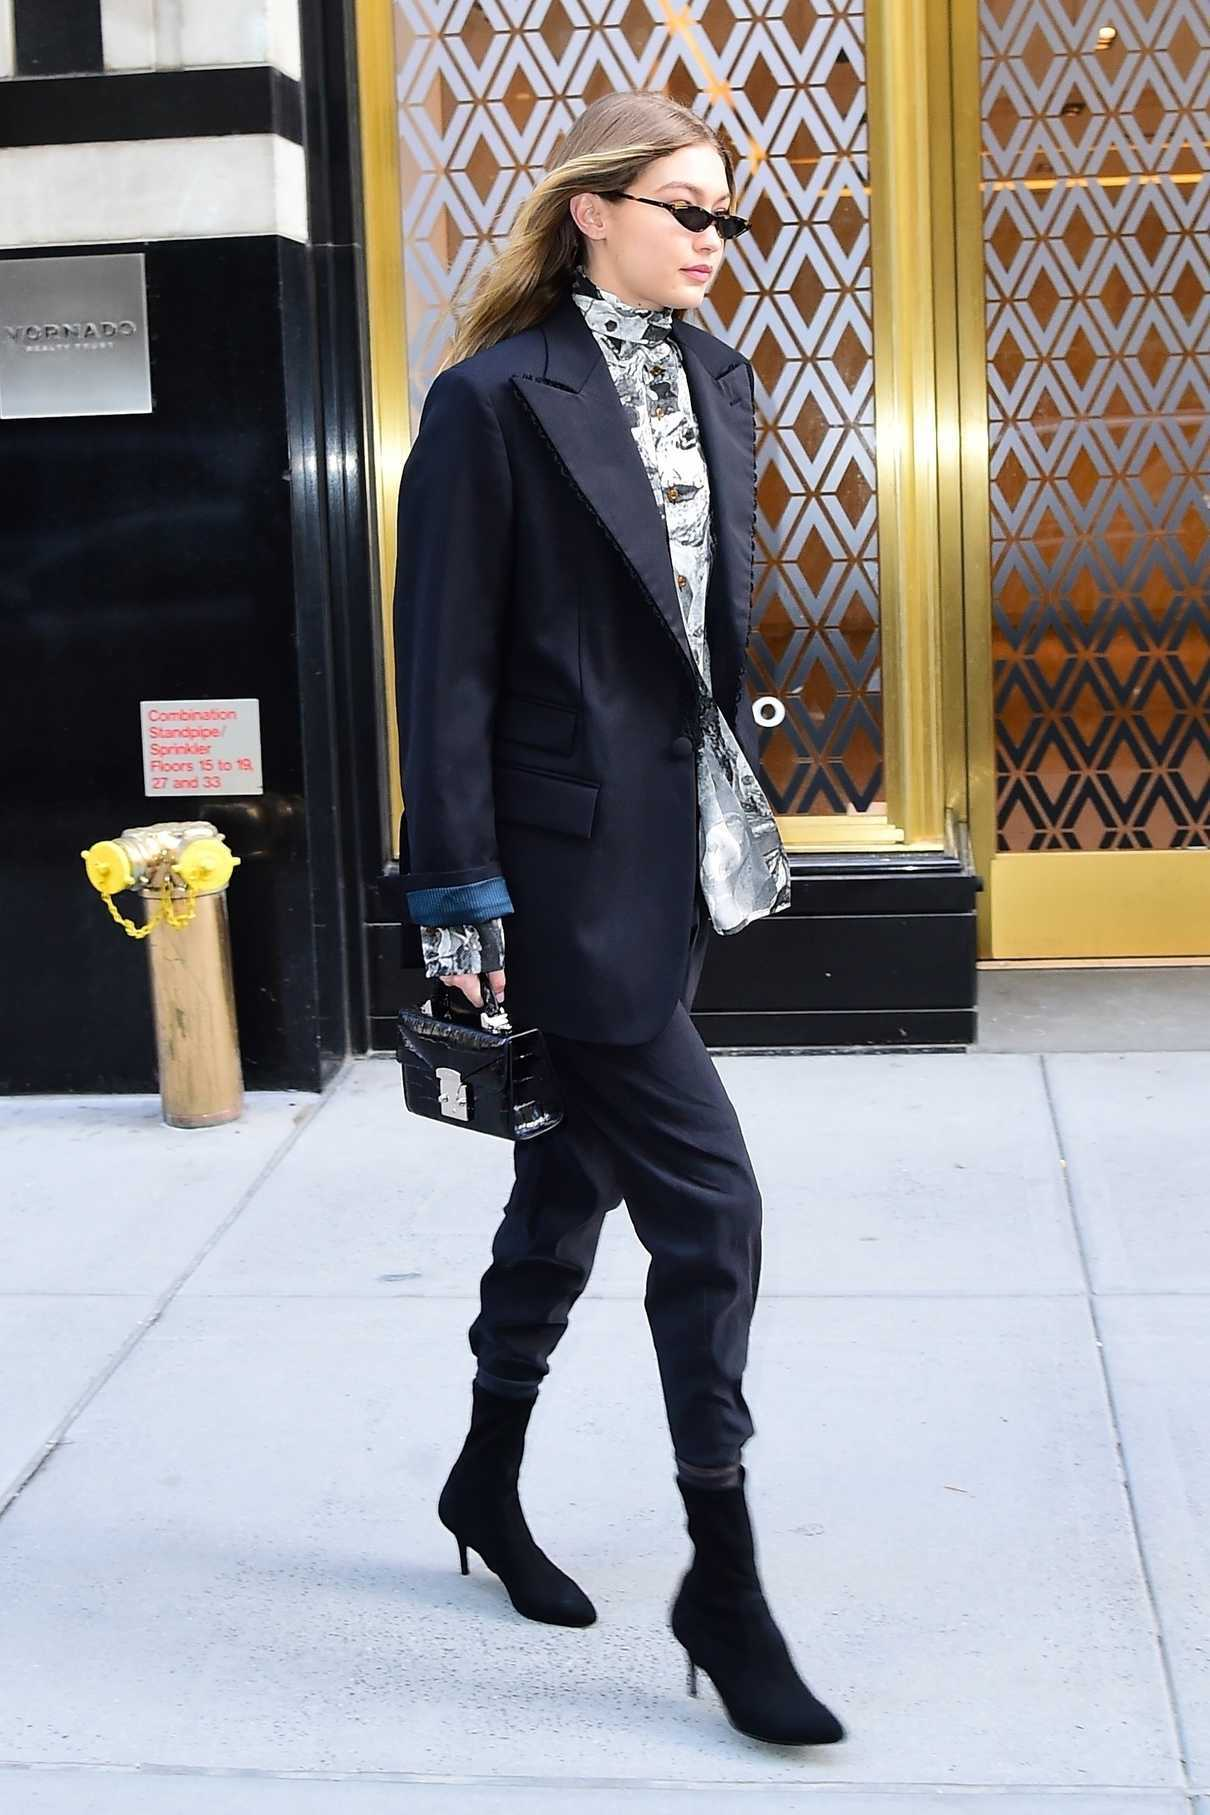 Gigi Hadid Wears a Pant Suit During New York Fashion Week in New York City 02/08/2018-4